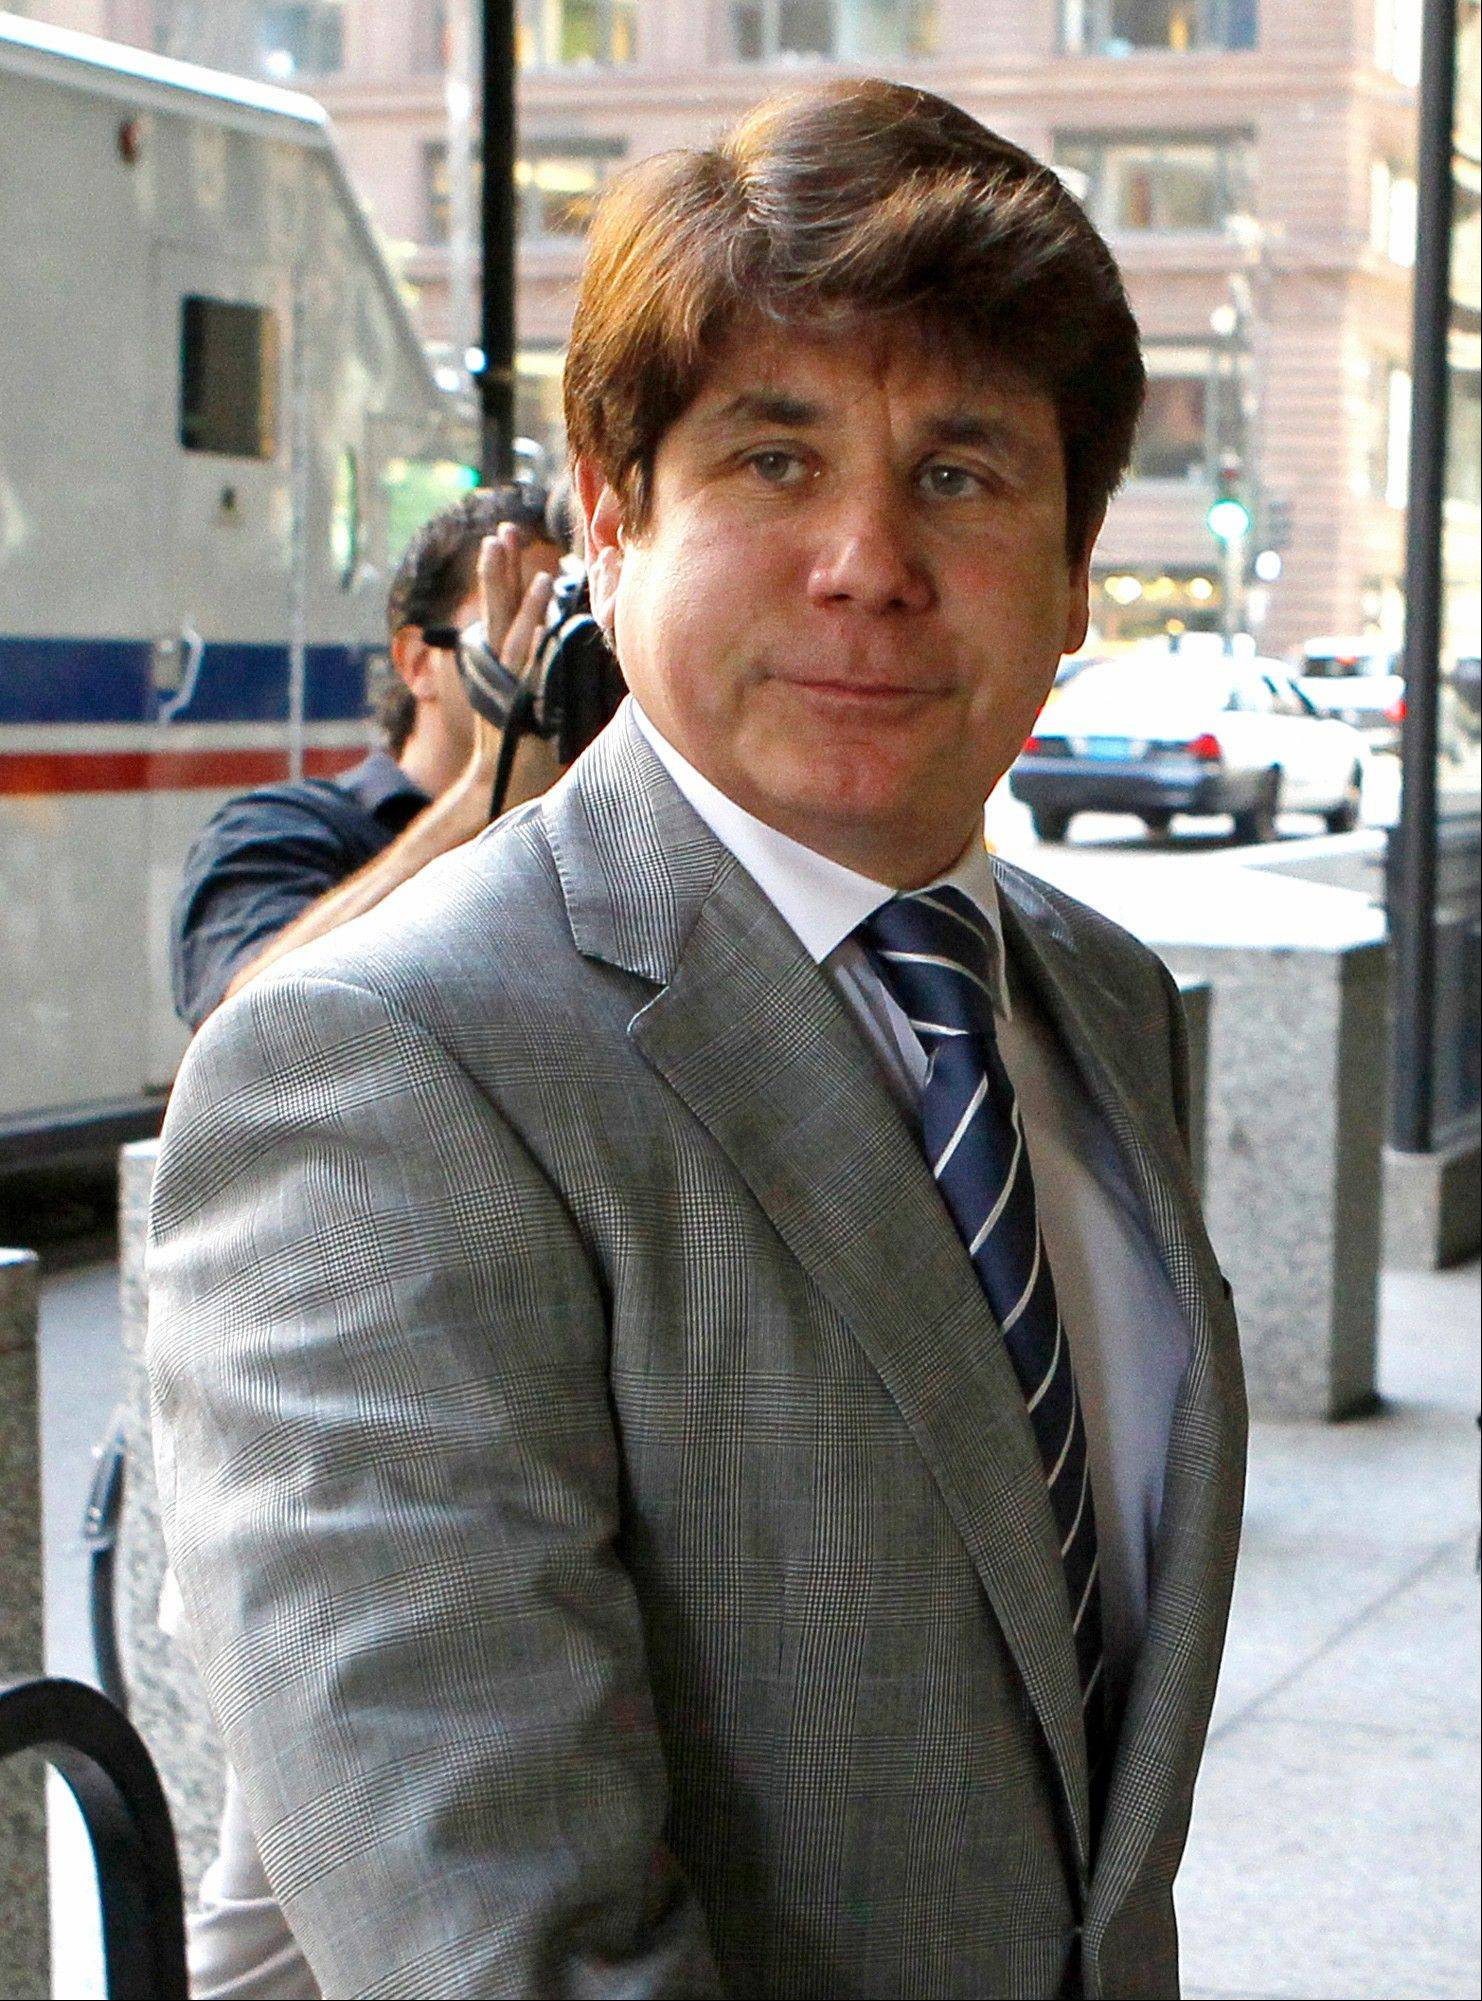 Former Gov. Rod Blagojevich will be sentenced Dec. 6 for 18 counts of corruption.